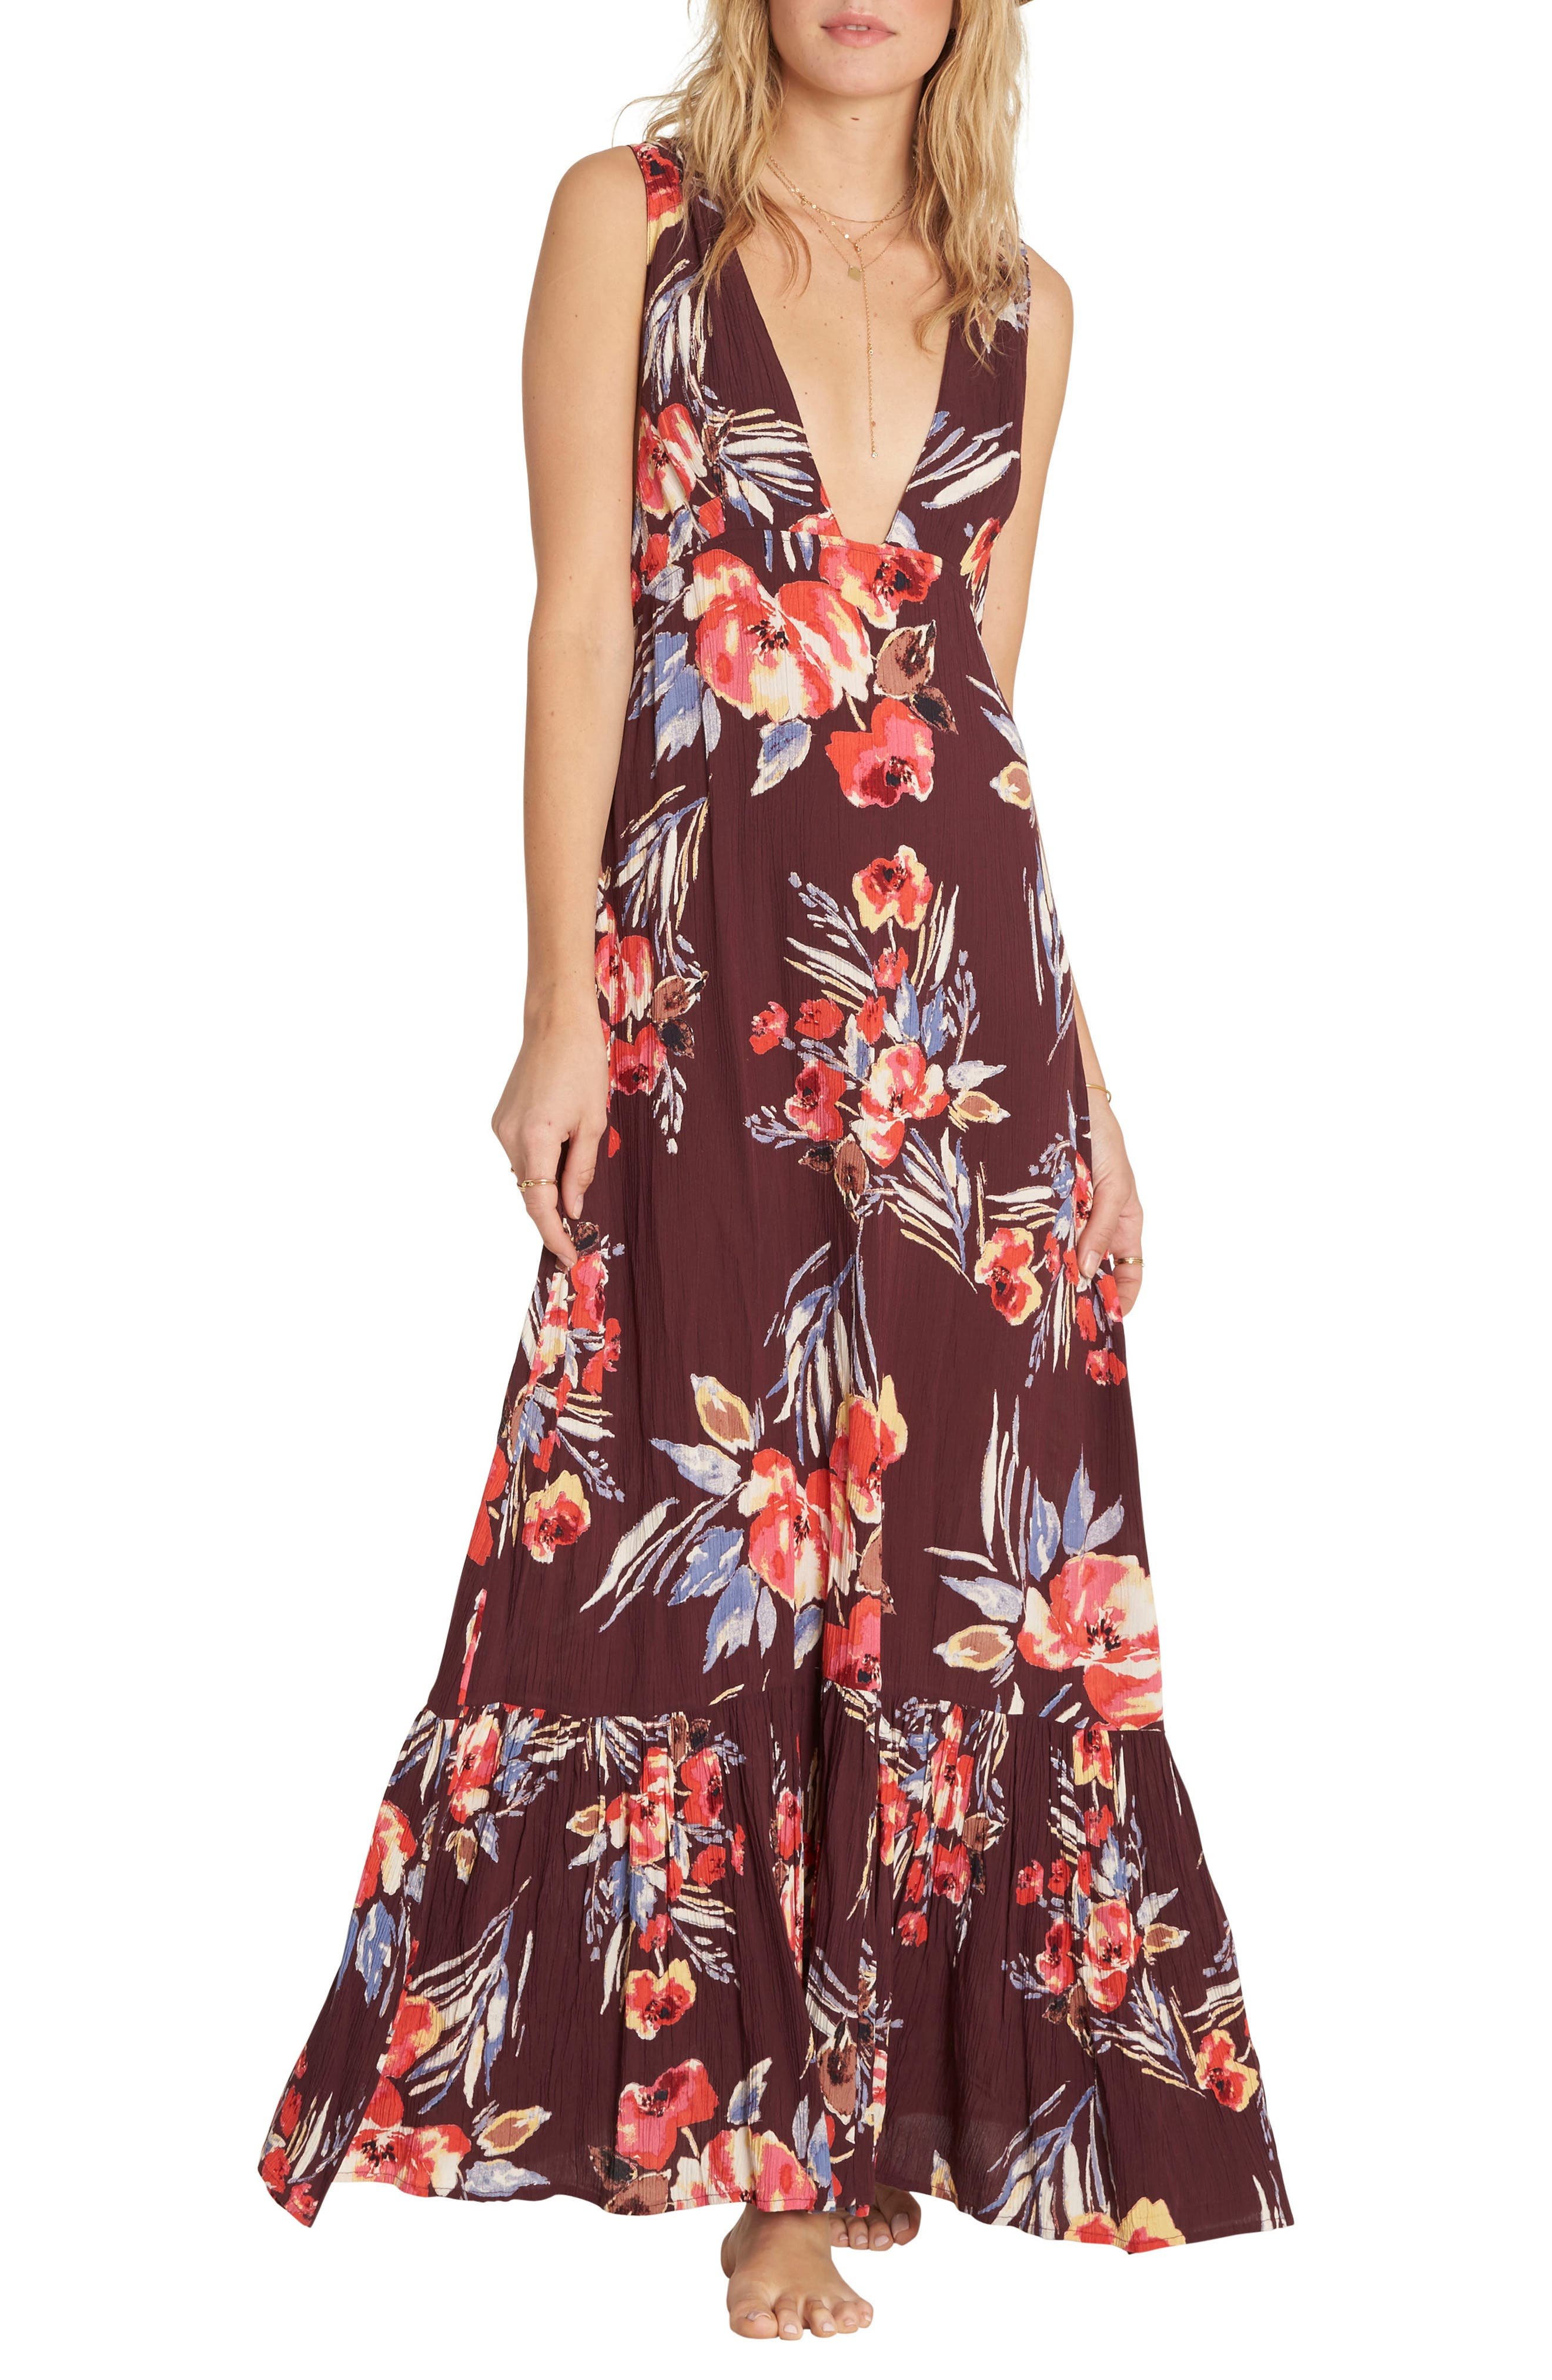 Billabong Awoke for Waves Floral Print Maxi Dress